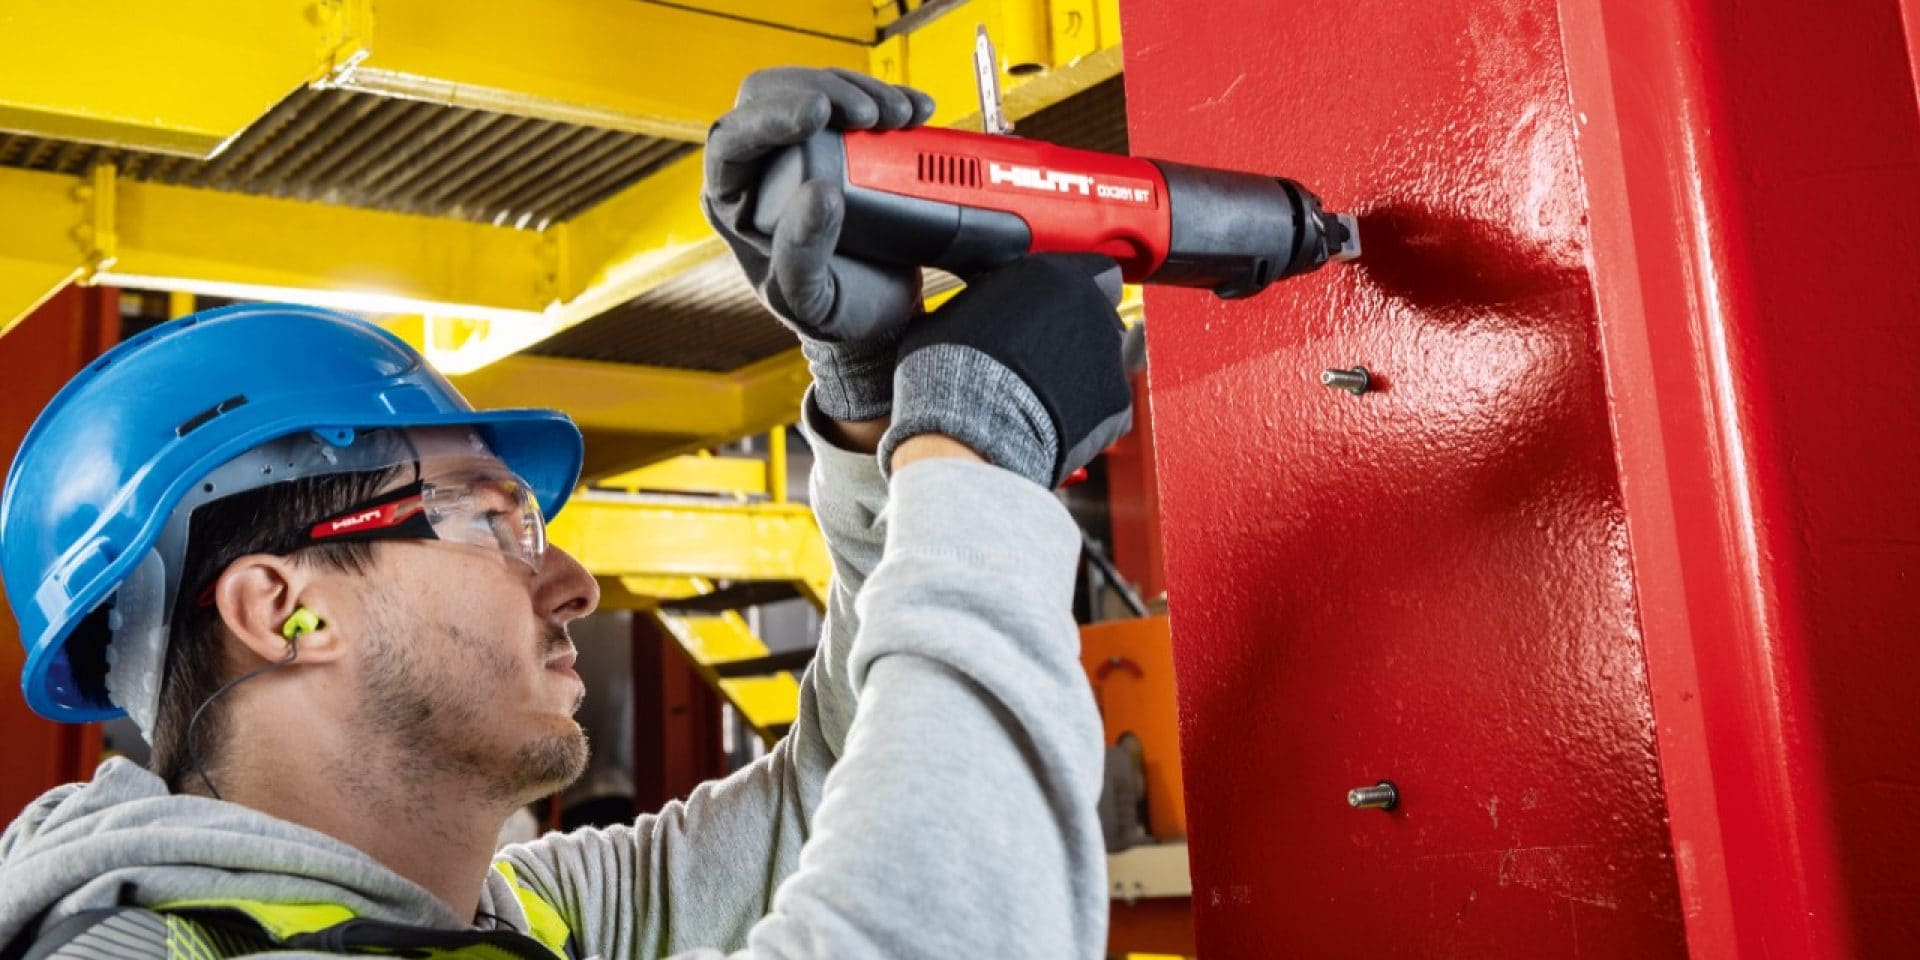 Fastening made using a Hilti powder-actuated nailer